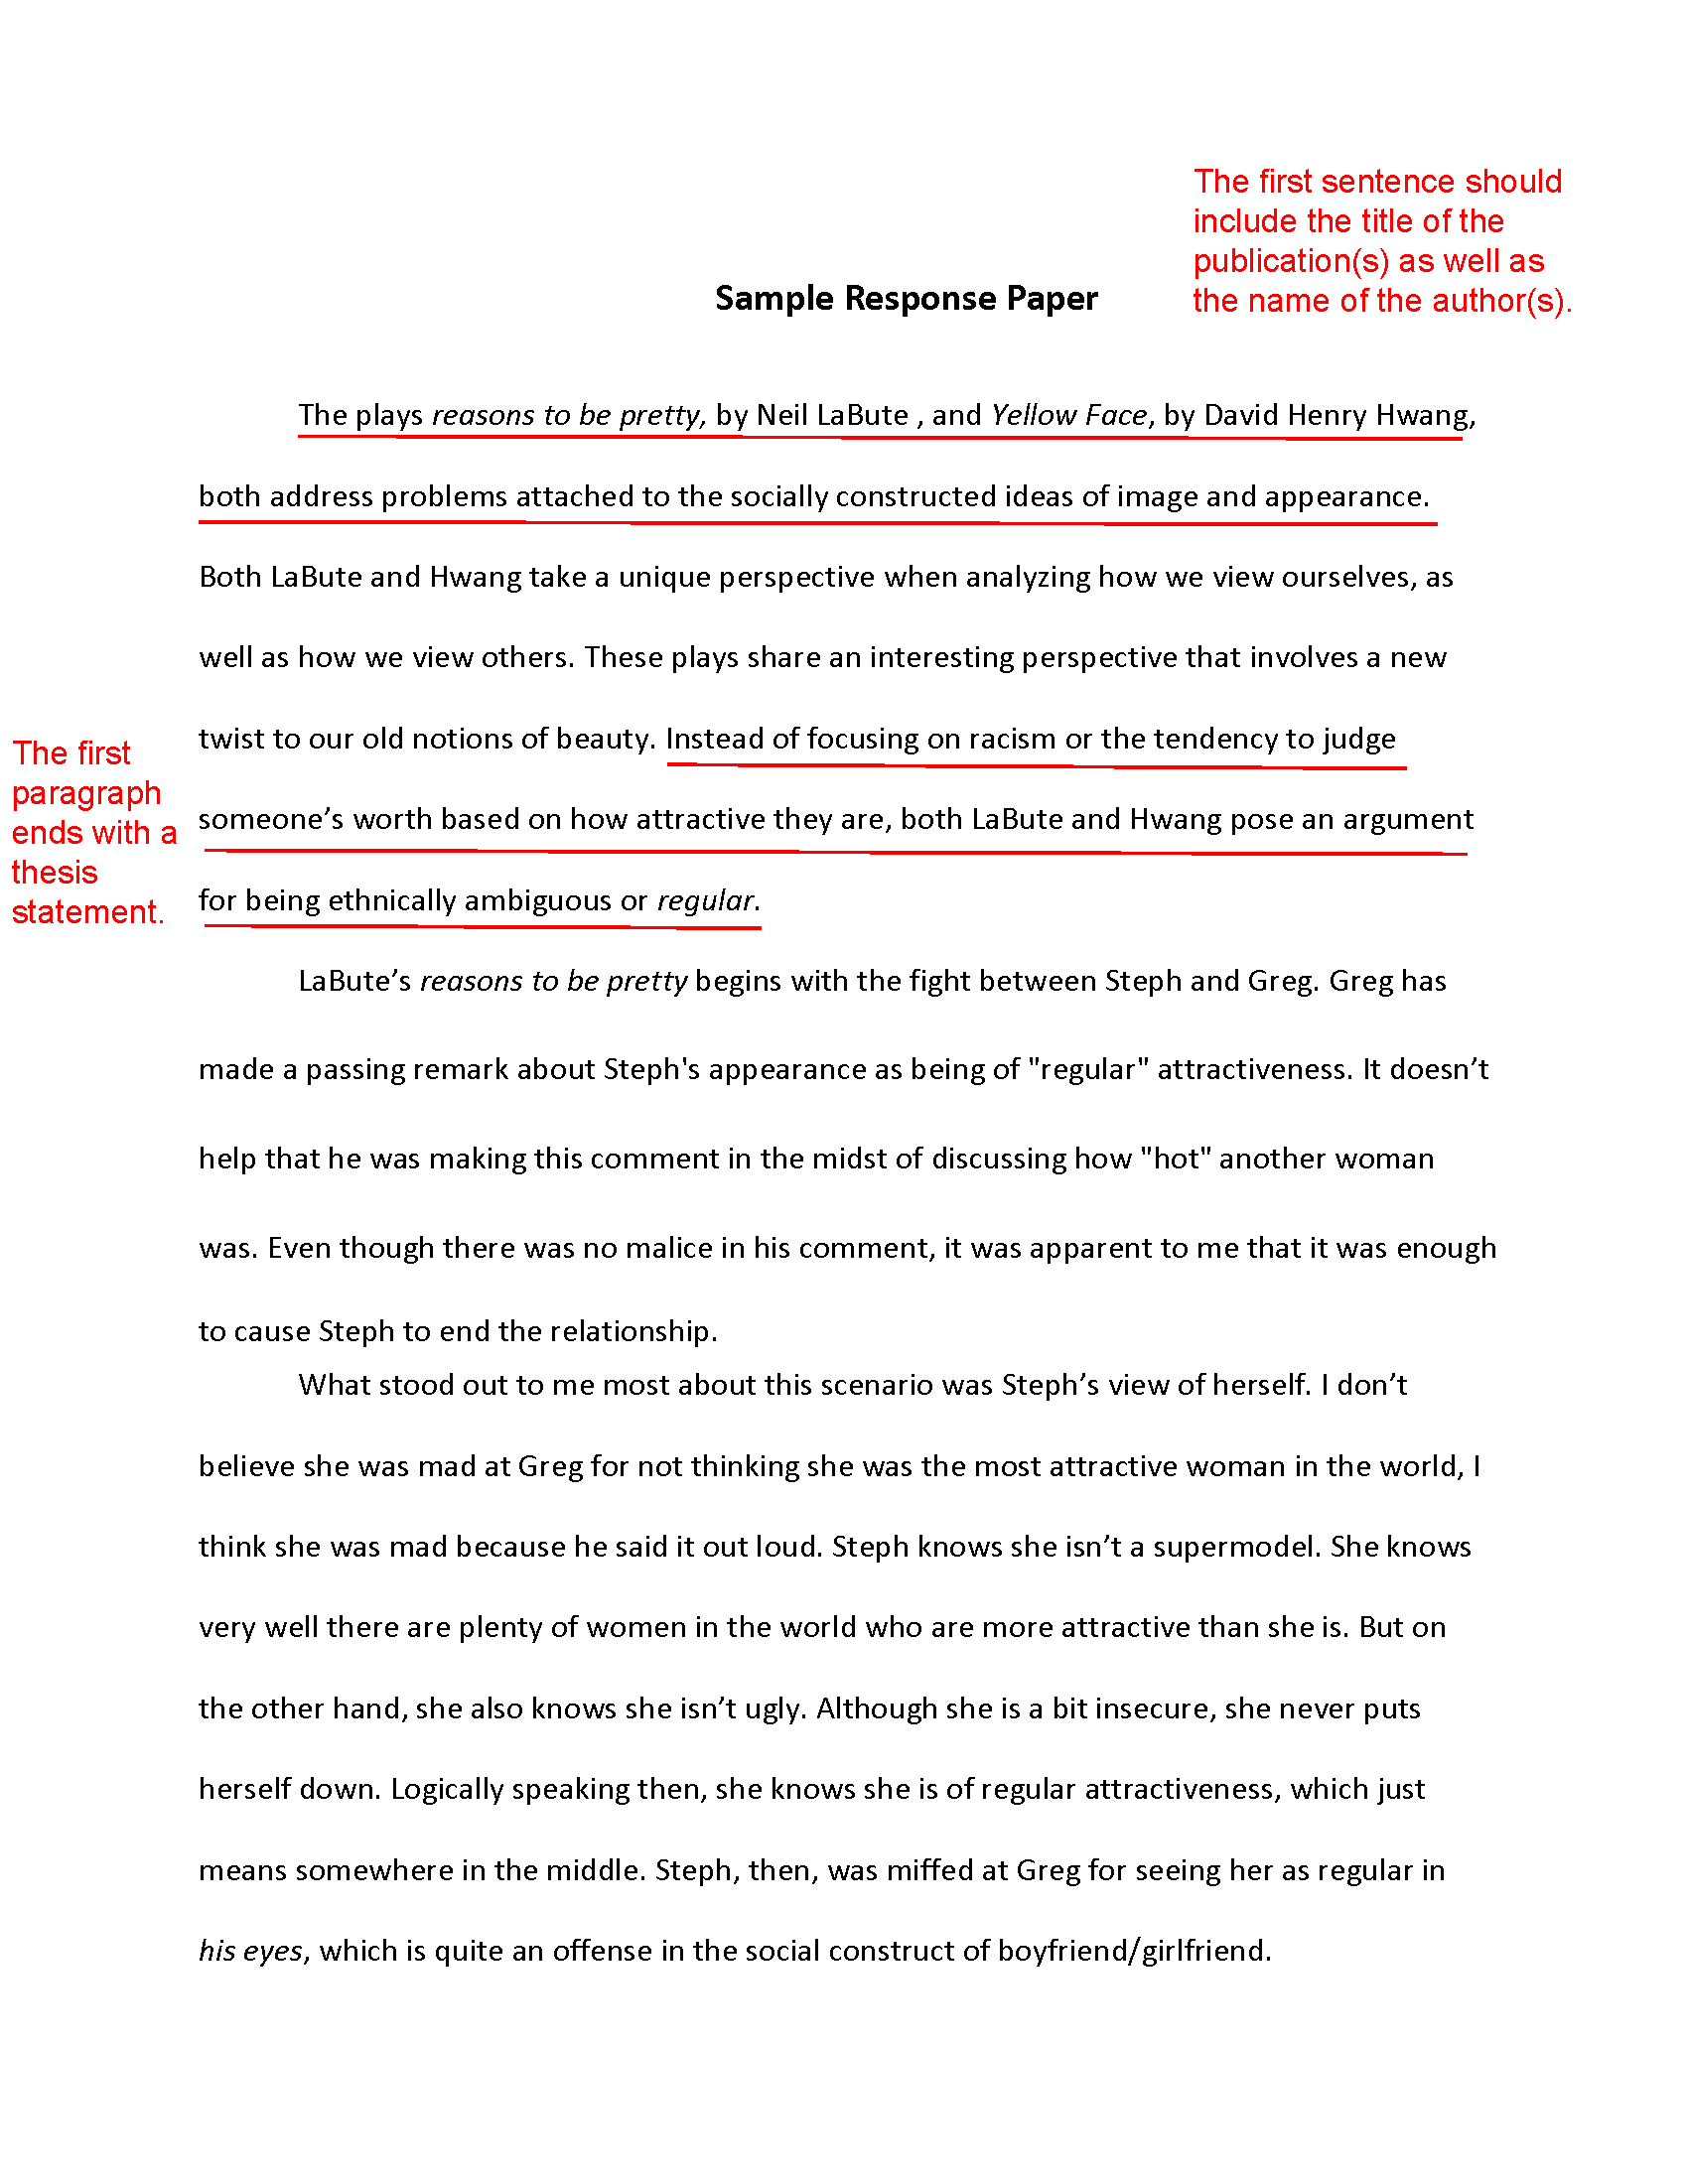 How to write a response paper spiritdancerdesigns Choice Image